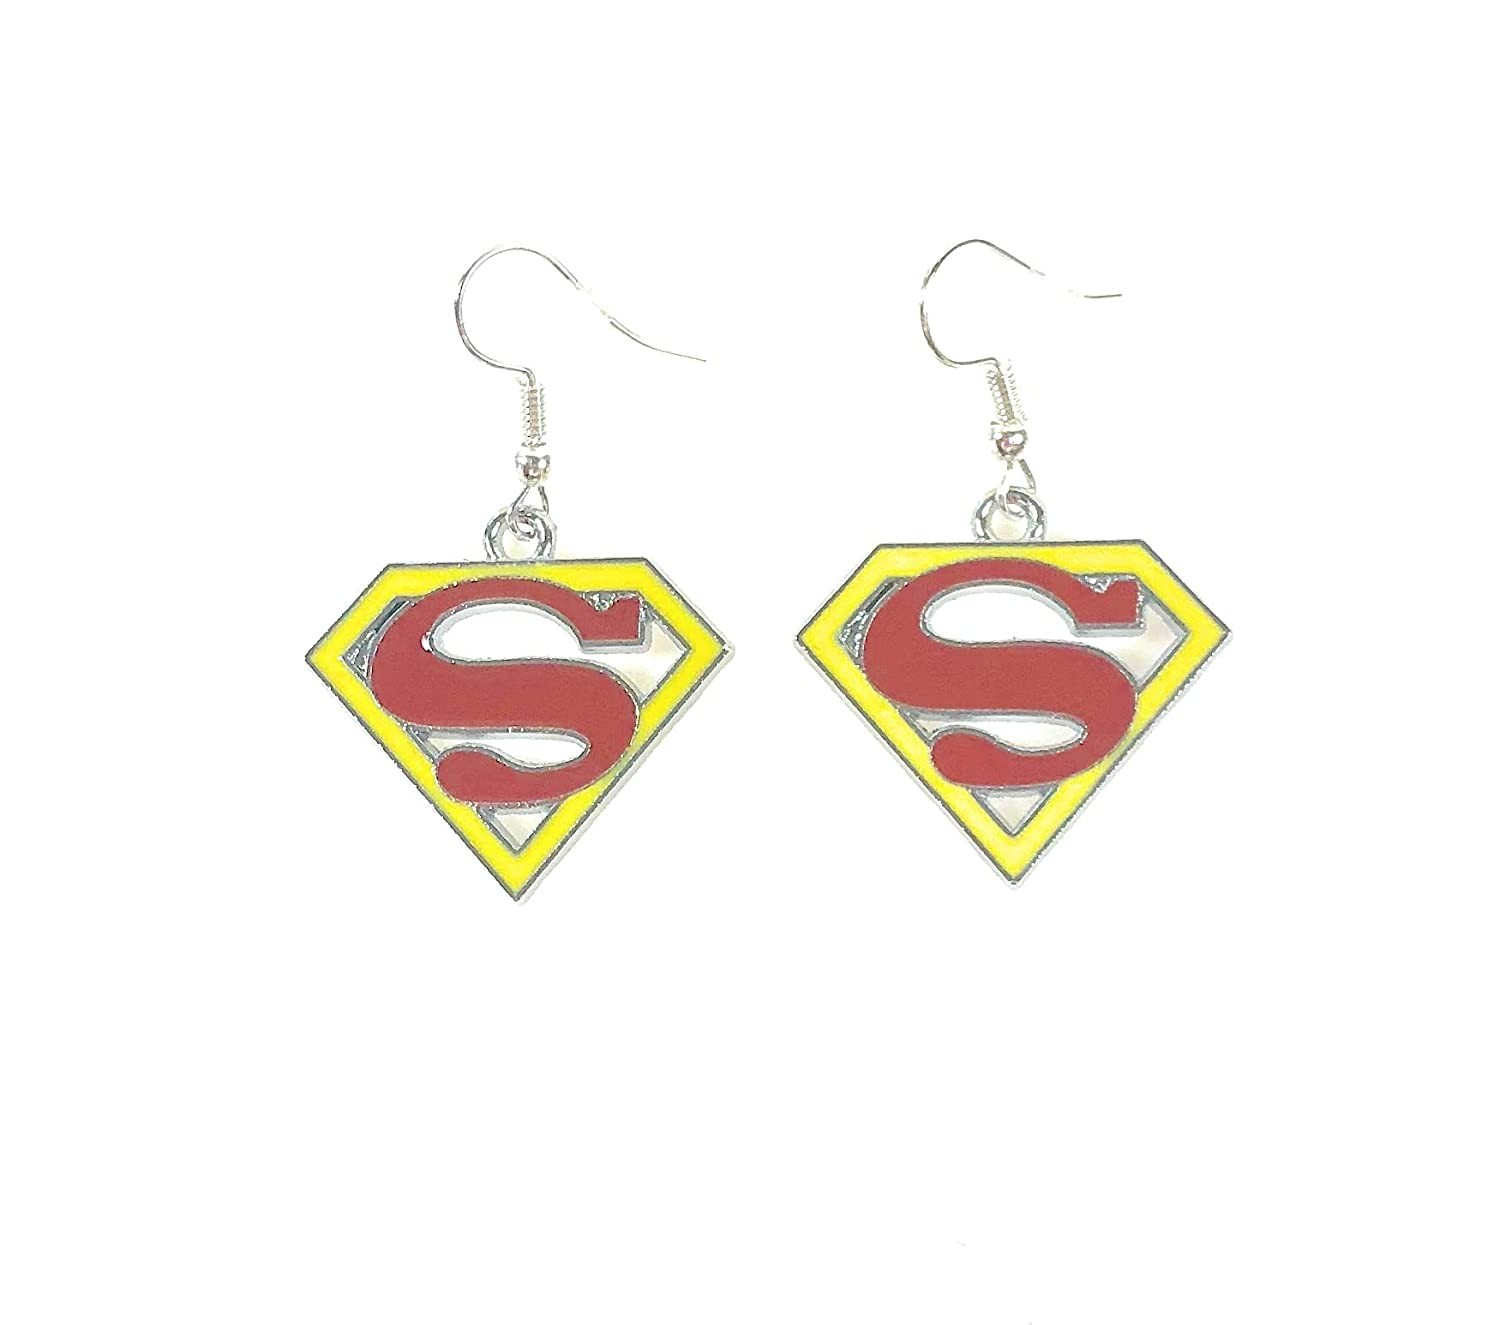 Amazon.com: DC COMICS Superhero inspired Superwoman LOGO Symbol Charm Character Silver Metal Dangle Hook Earrings W/Gift Box: Jewelry